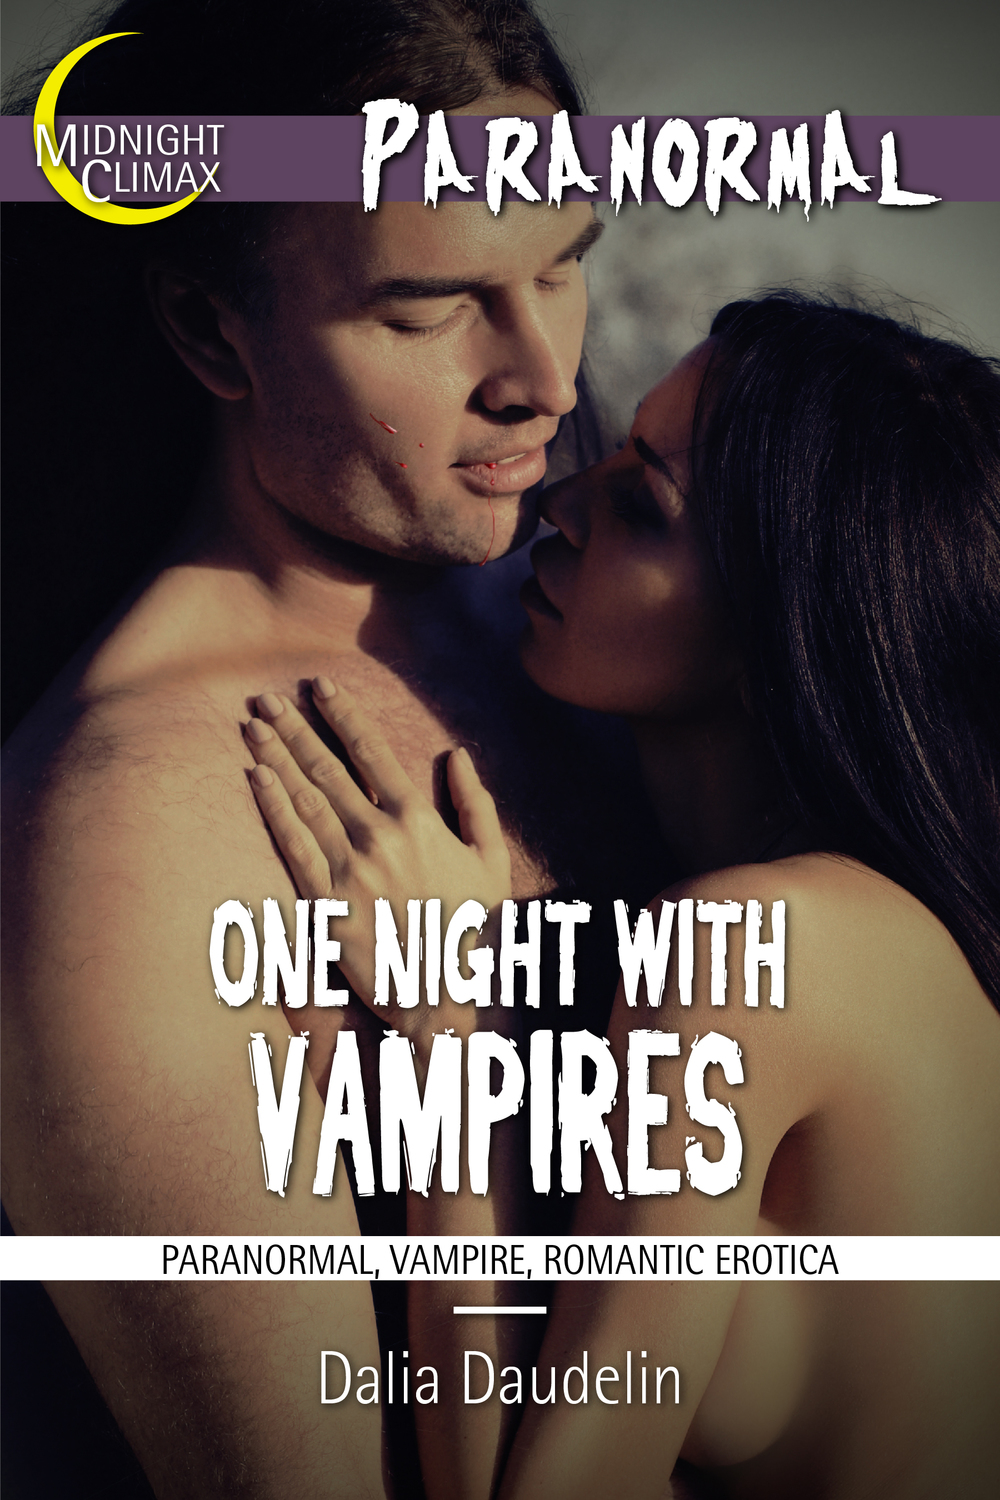 One Night With Vampires_Paranormal.jpg